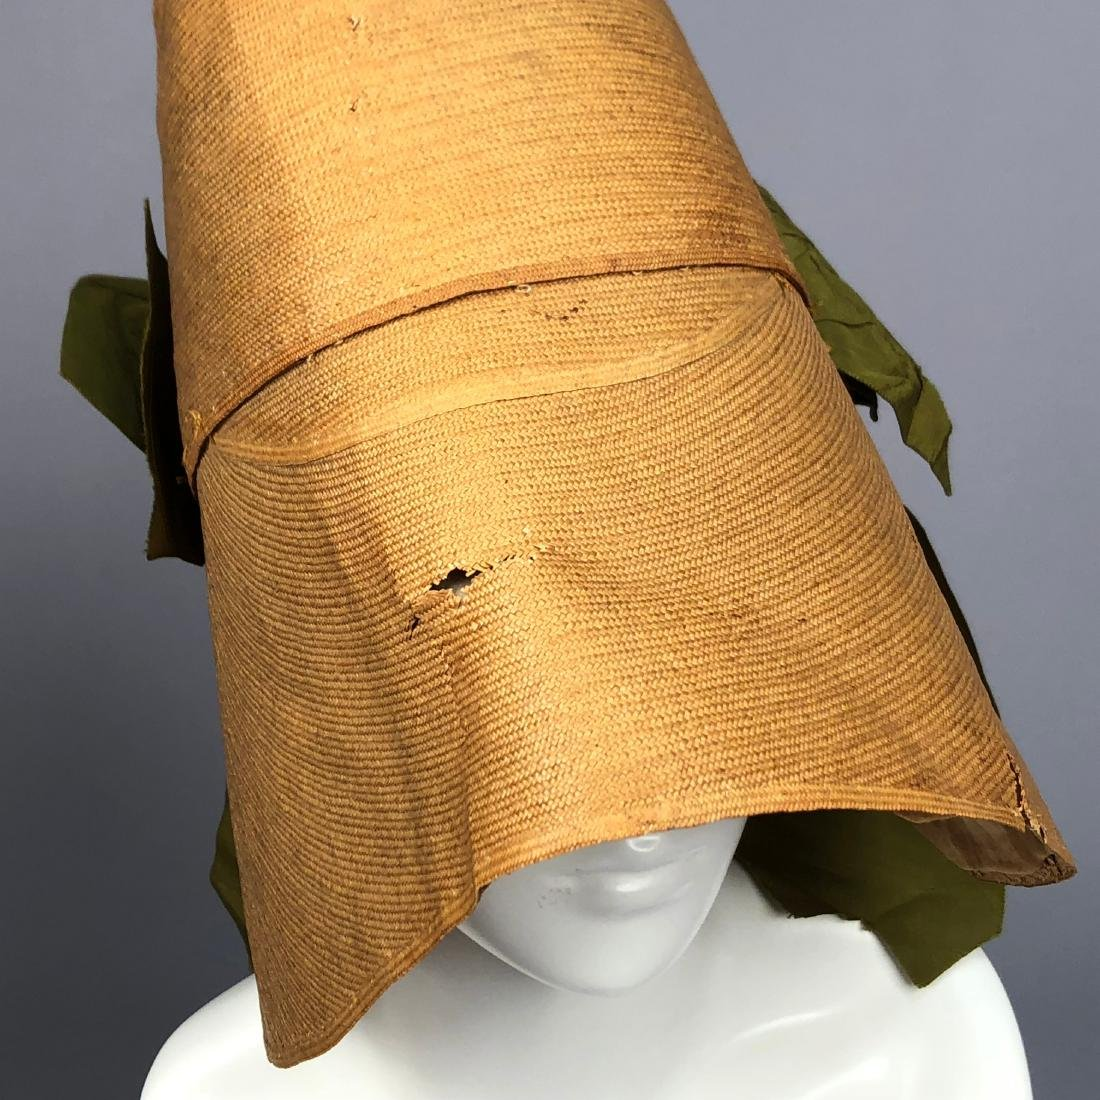 TWO BONNETS with RIBBON TRIM, 1830s - 8